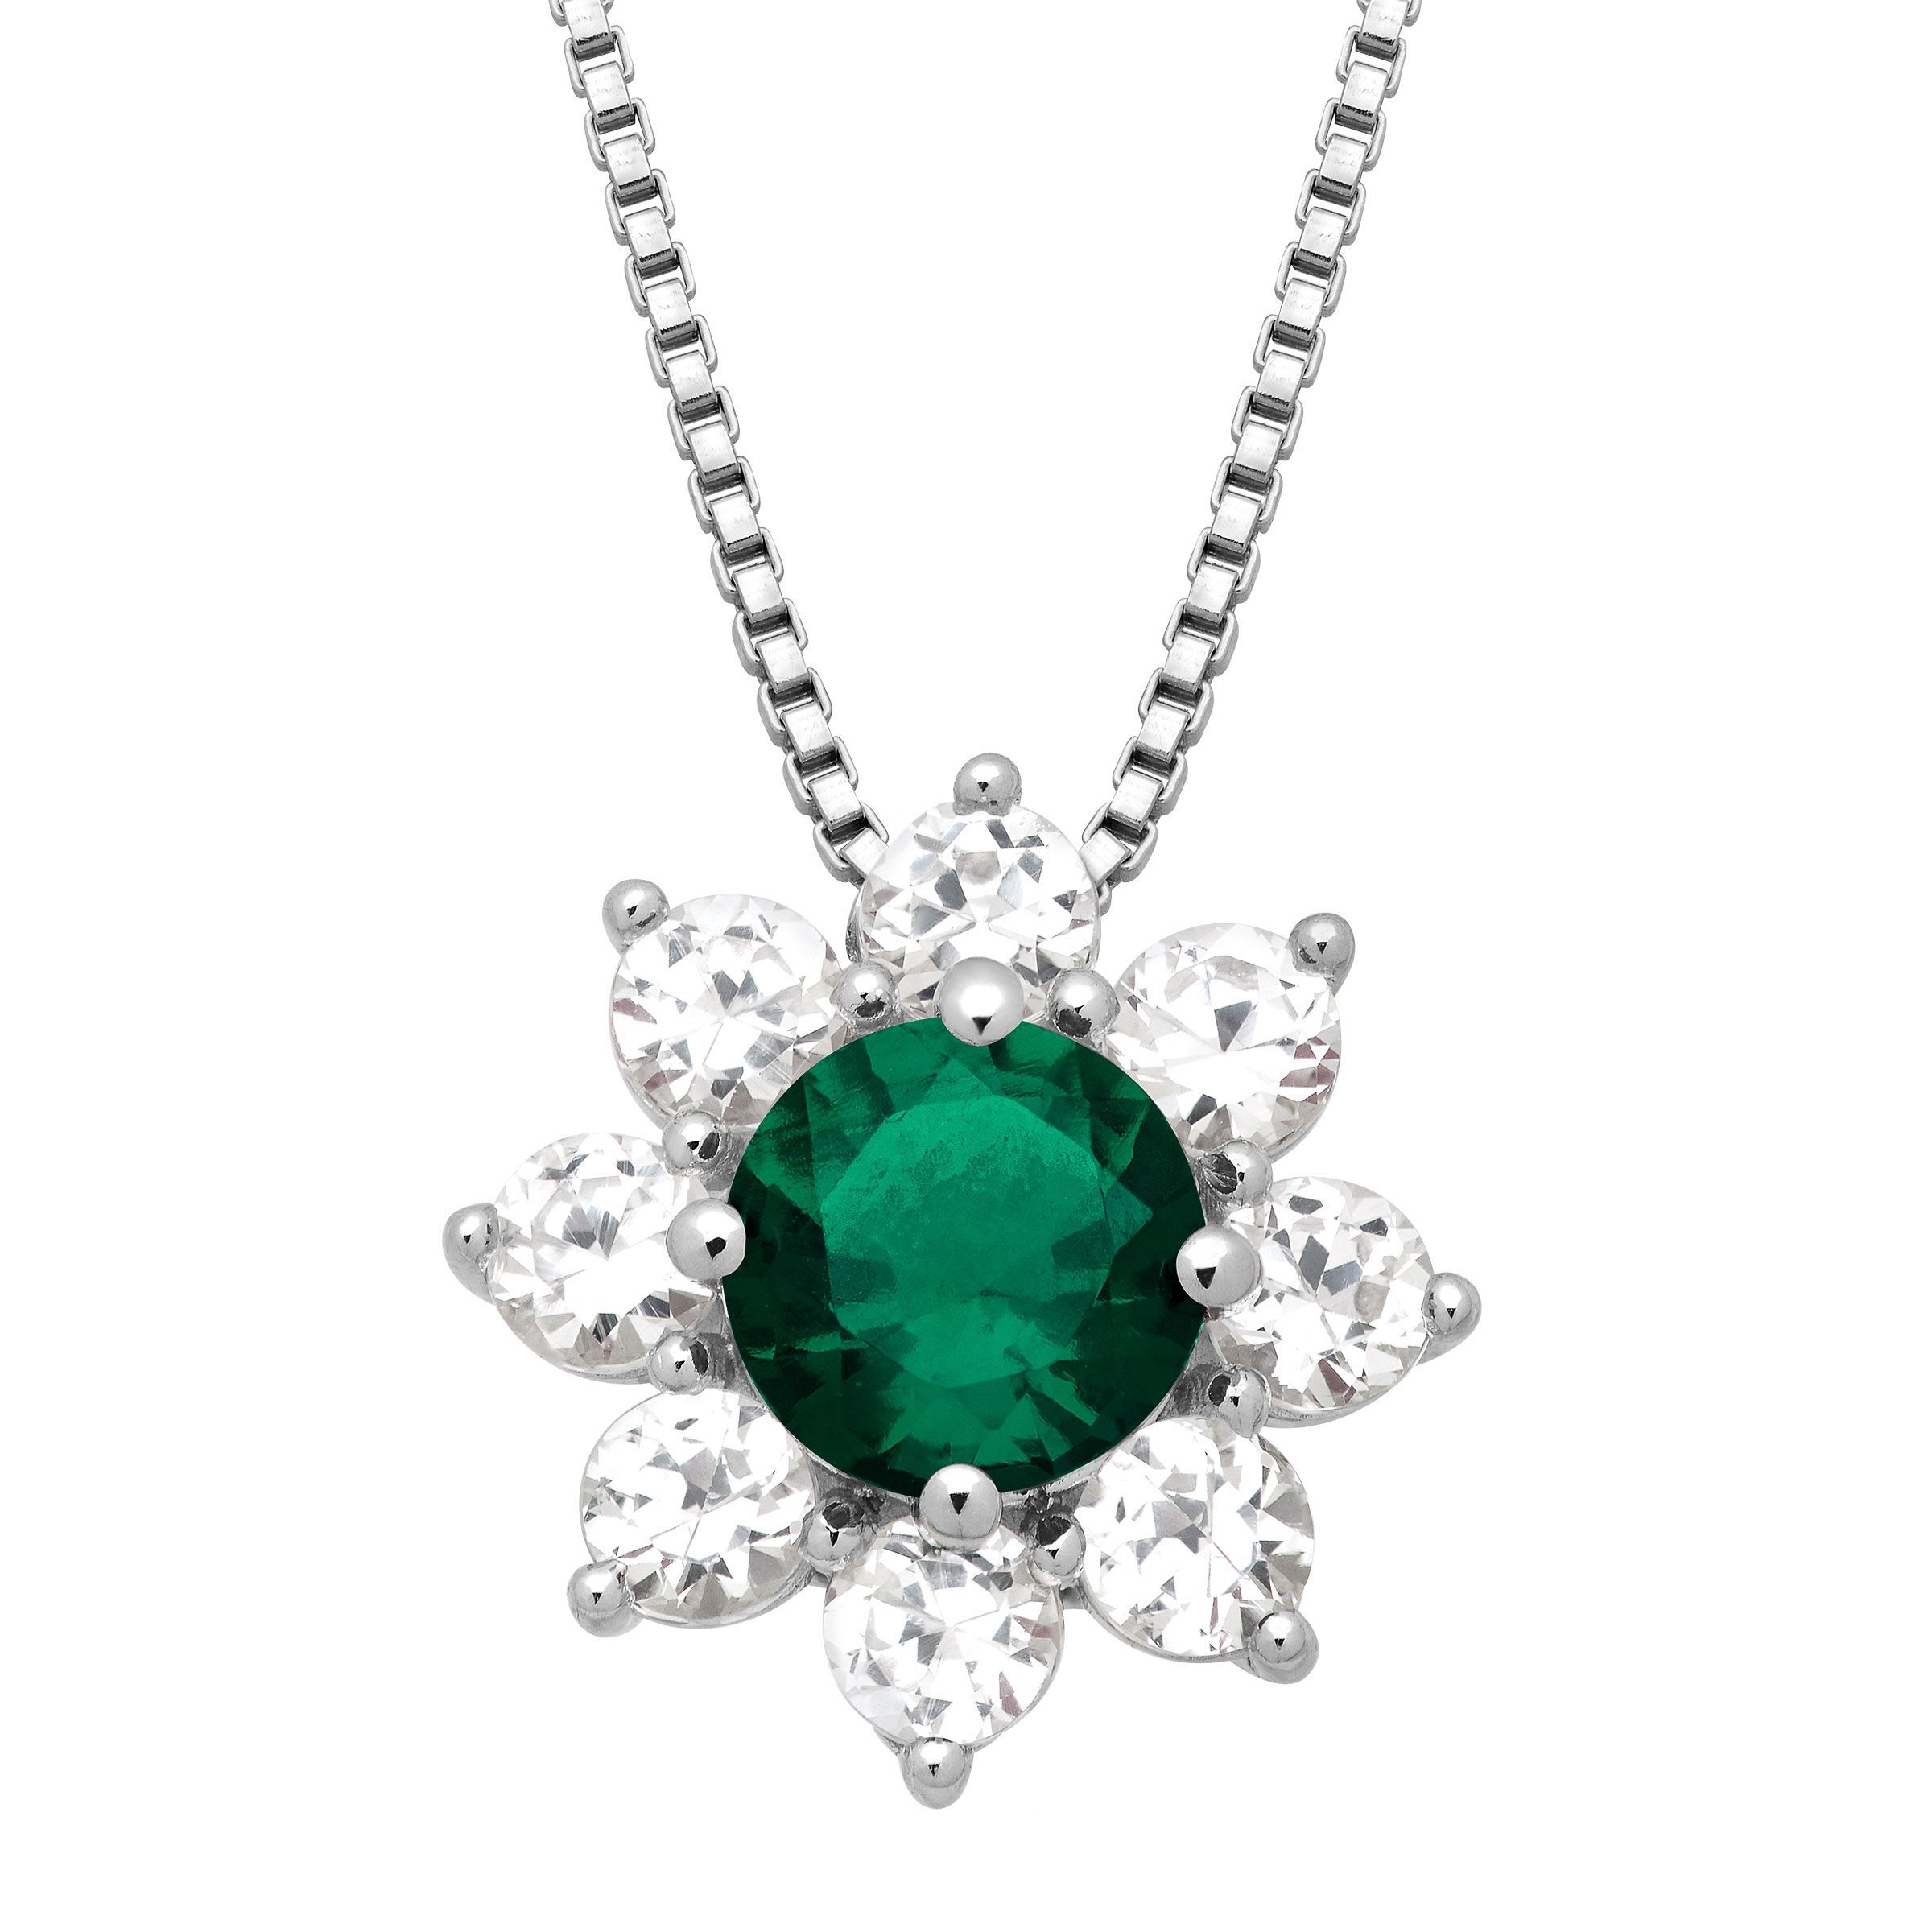 pinterest envy drop jewelry pendant pin island emerald gold diamond stores stone gemstone fortunoff long oval with emeralds white green and